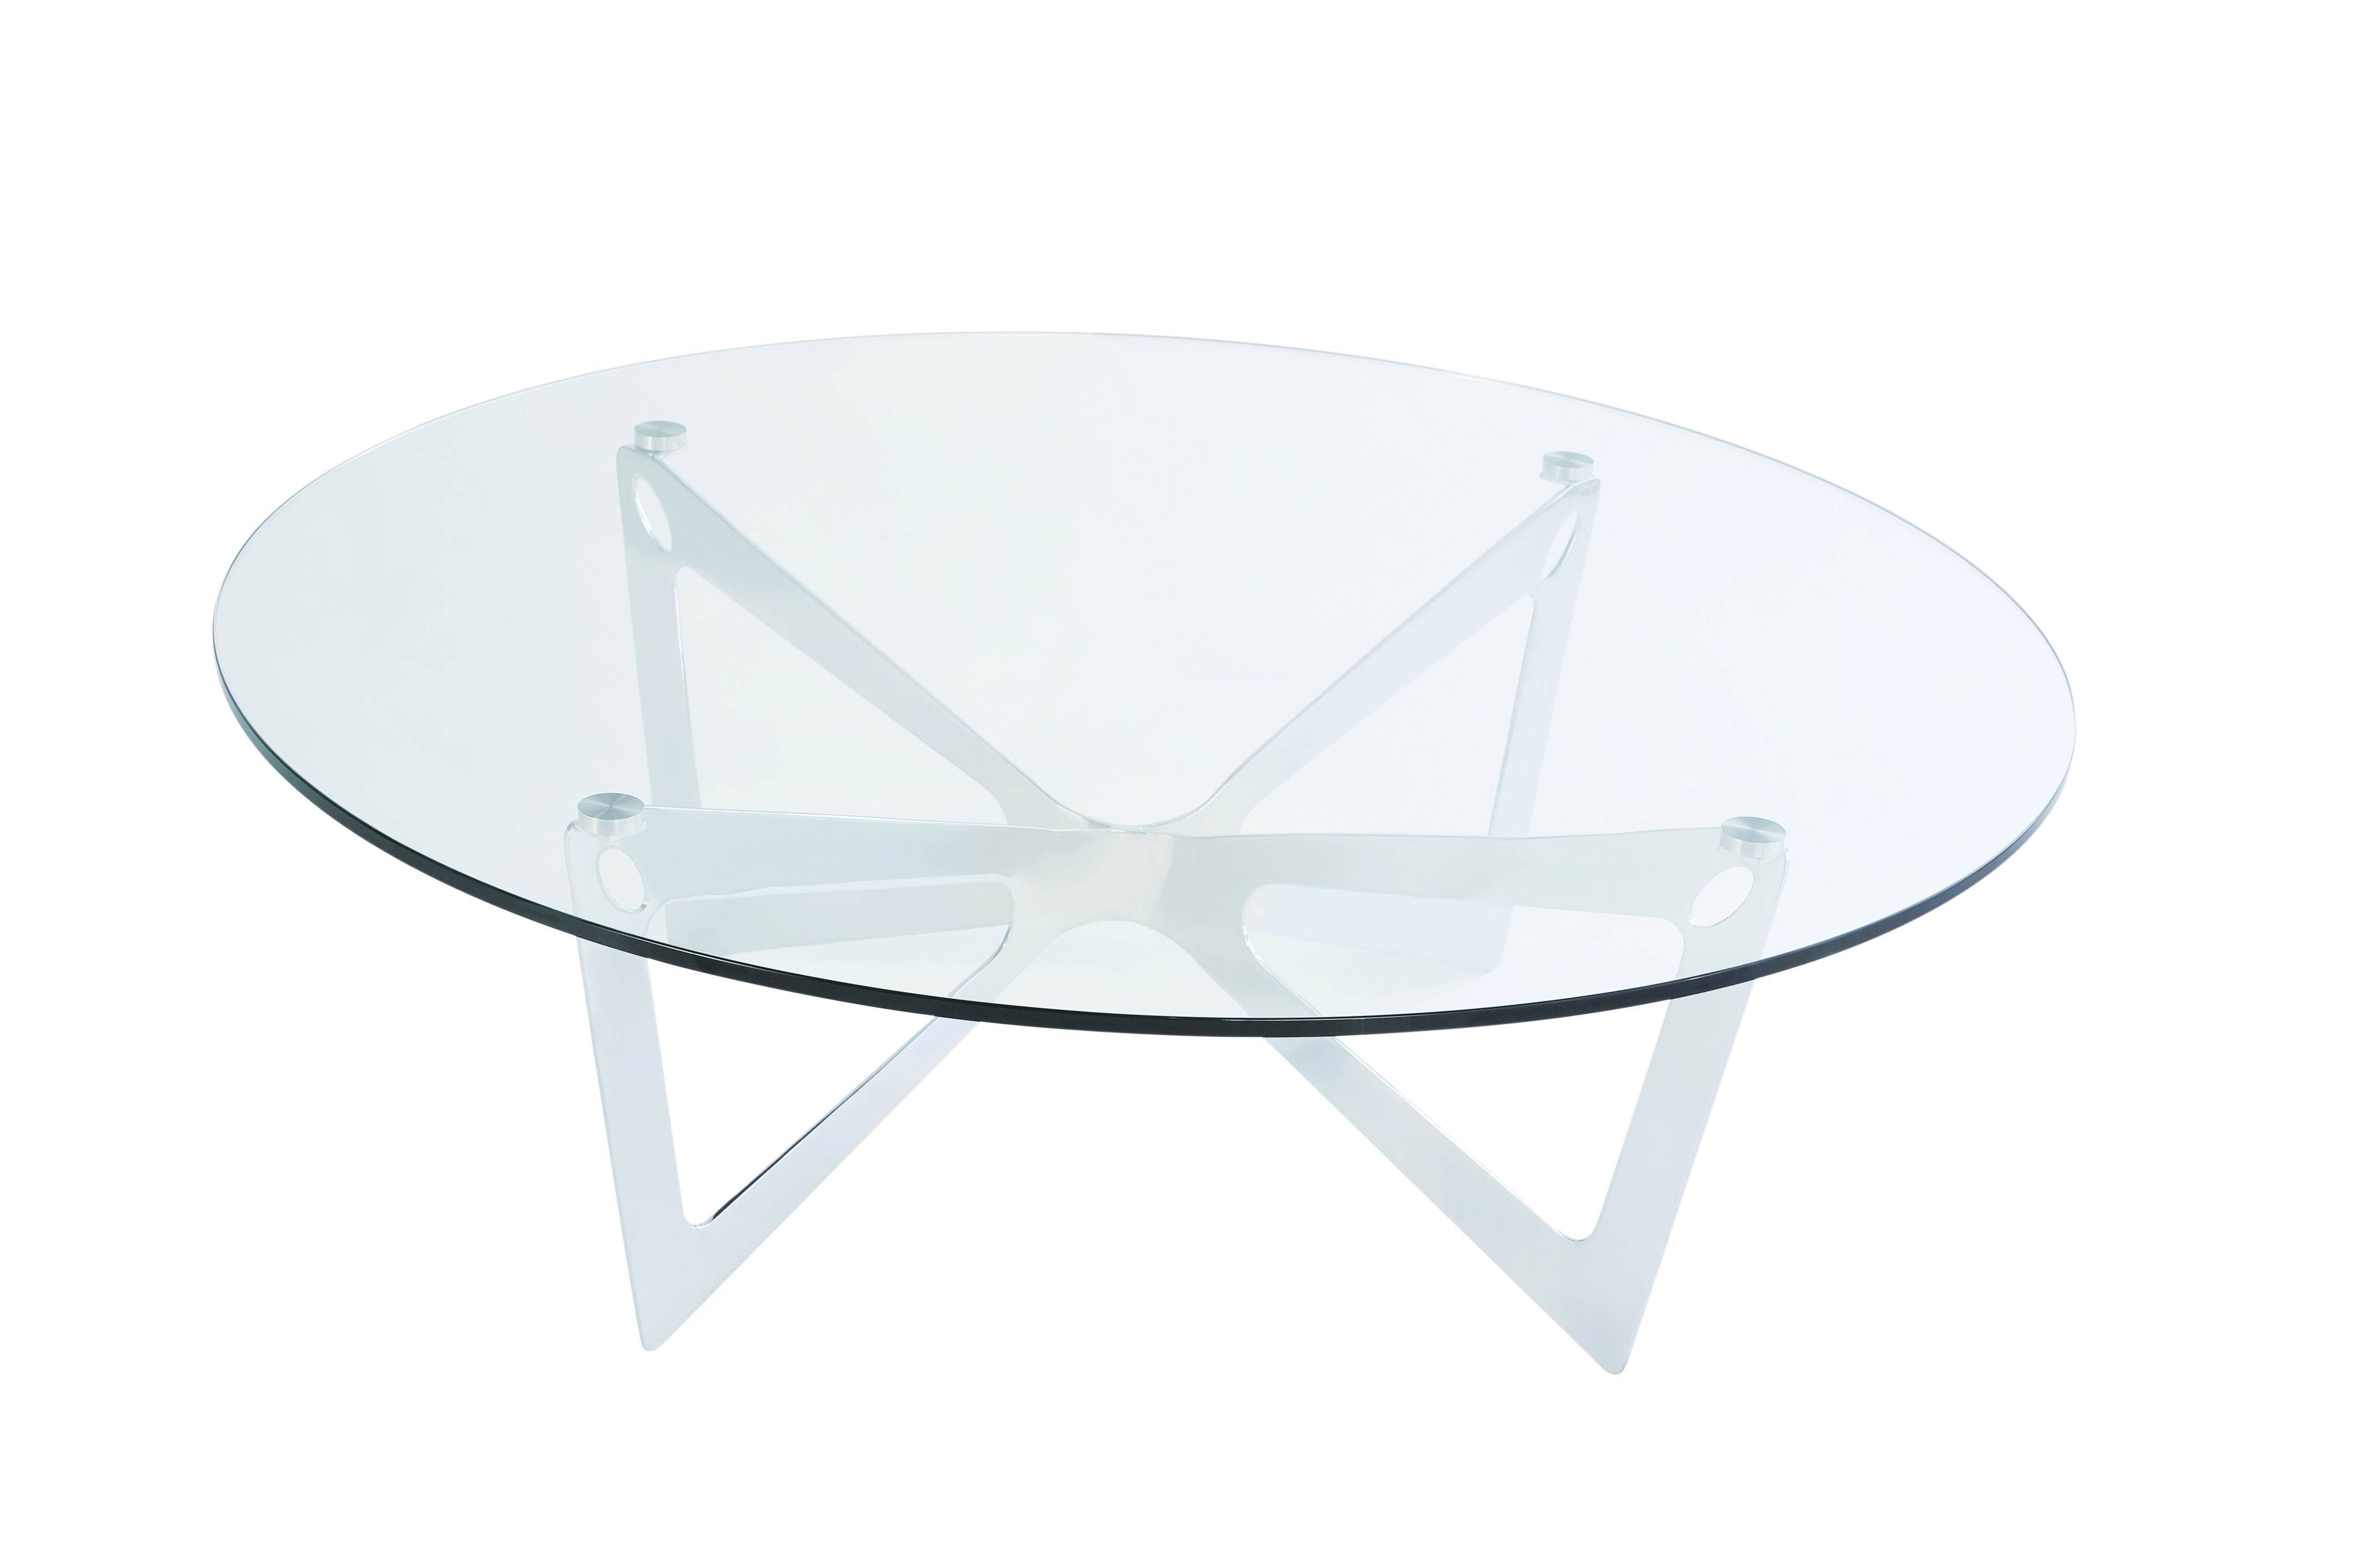 Round Metal And Glass Coffee Table - Starrkingschool intended for Coffee Tables Metal and Glass (Image 30 of 30)